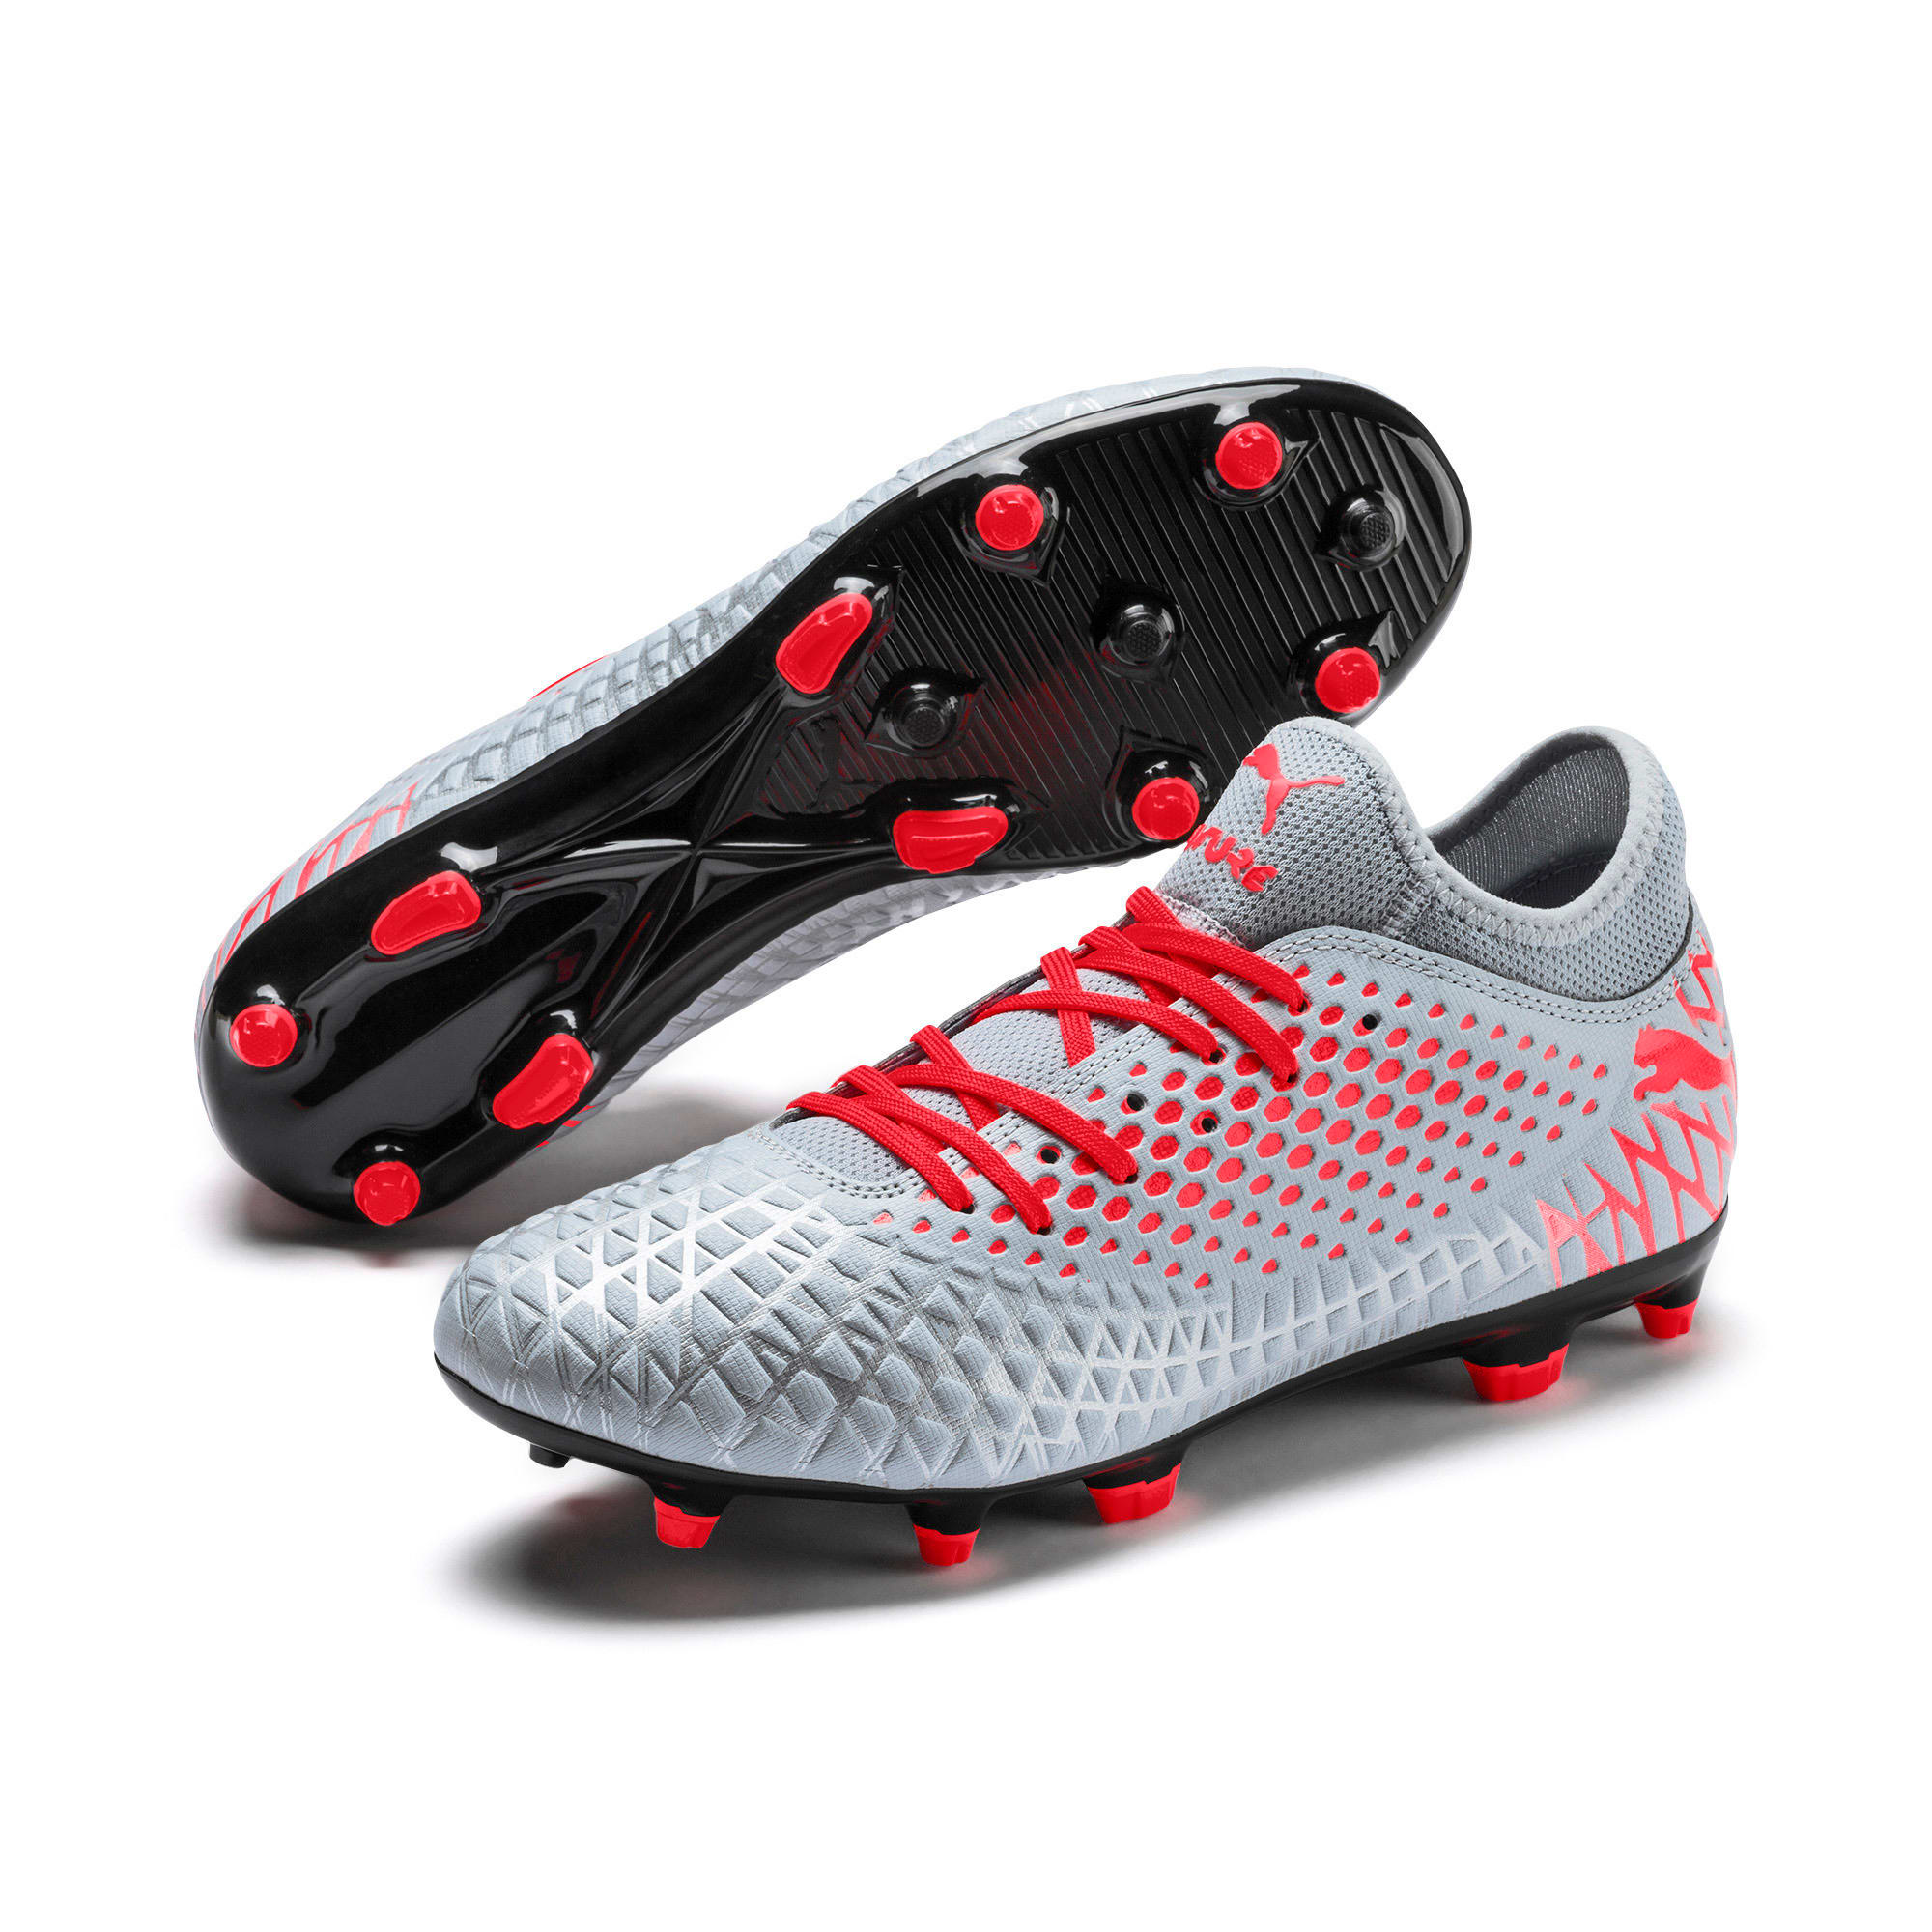 Thumbnail 3 of FUTURE 4.4 FG/AG Men's Football Boots, Glacial Blue-Nrgy Red, medium